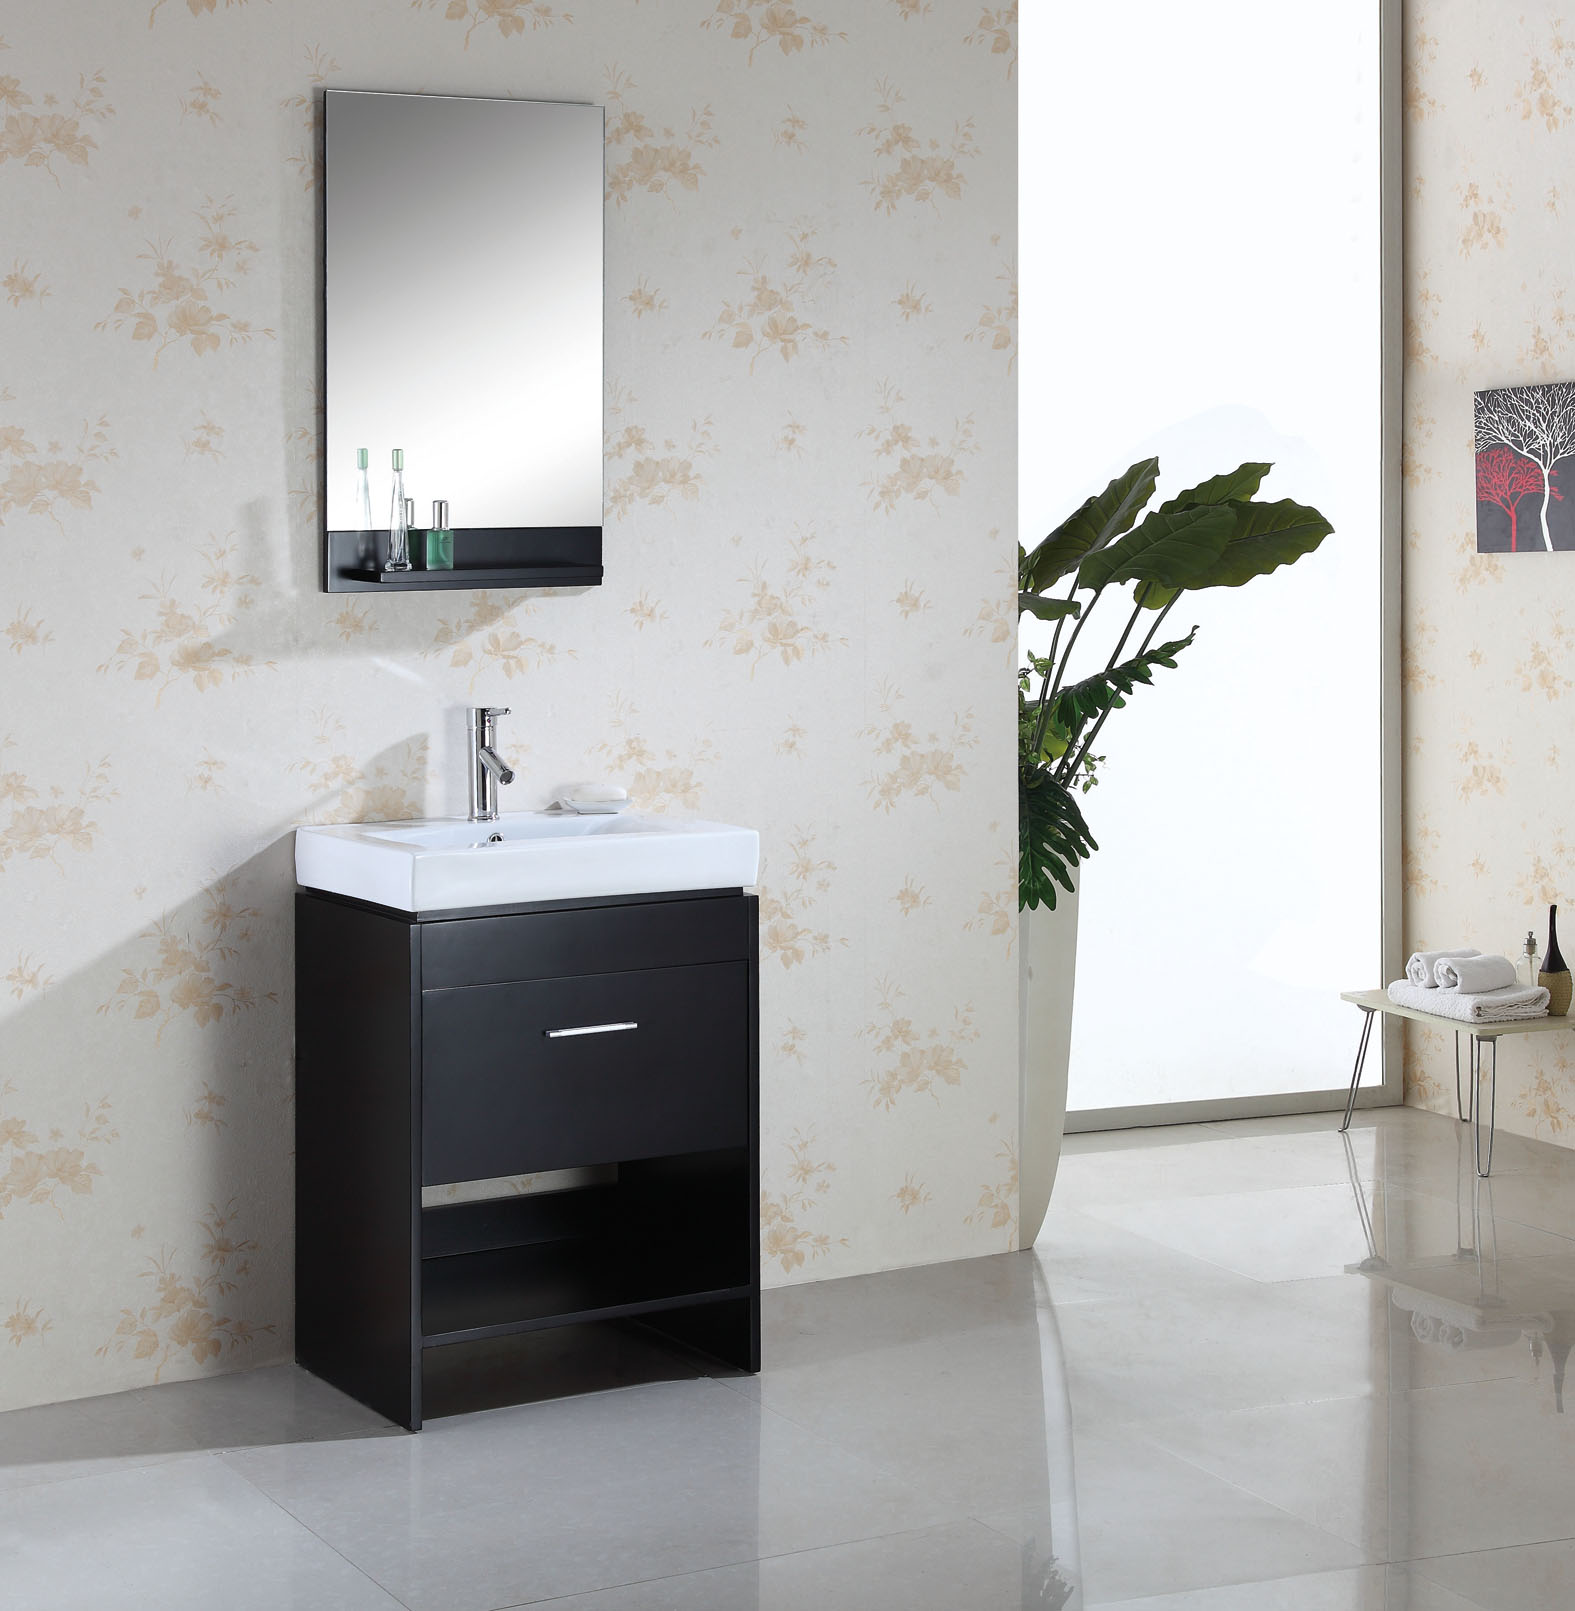 Bathroom Sink And Cabinets bathroom sink with cabinet | homesfeed